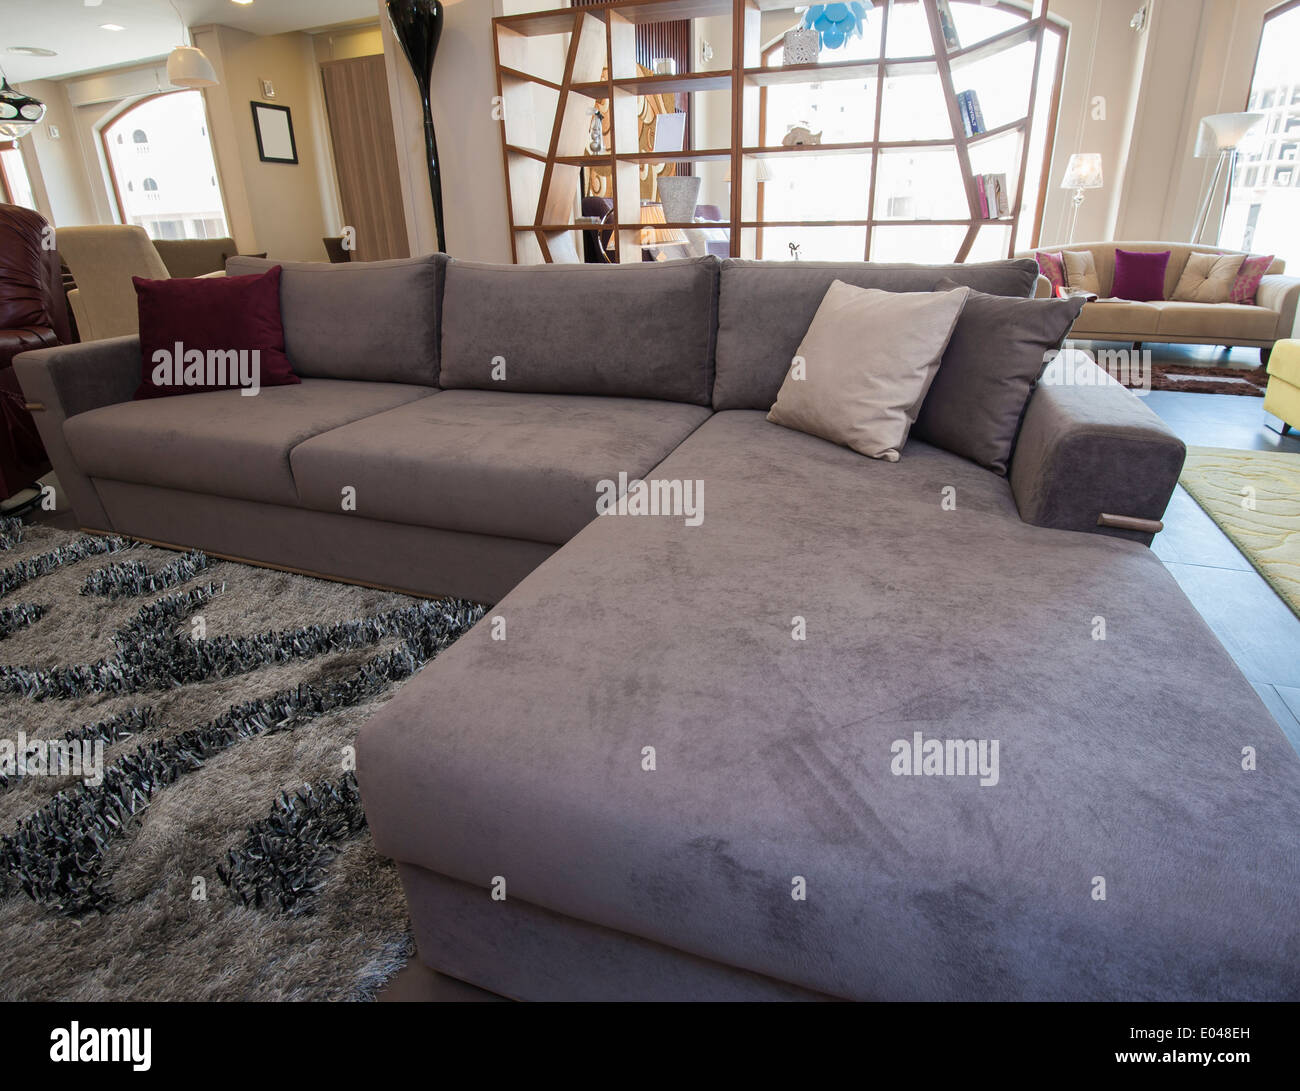 large l shaped corner sofa in living room furniture show home stock rh alamy com L-shaped Living Room Layout Small Living Room L-shaped Layout